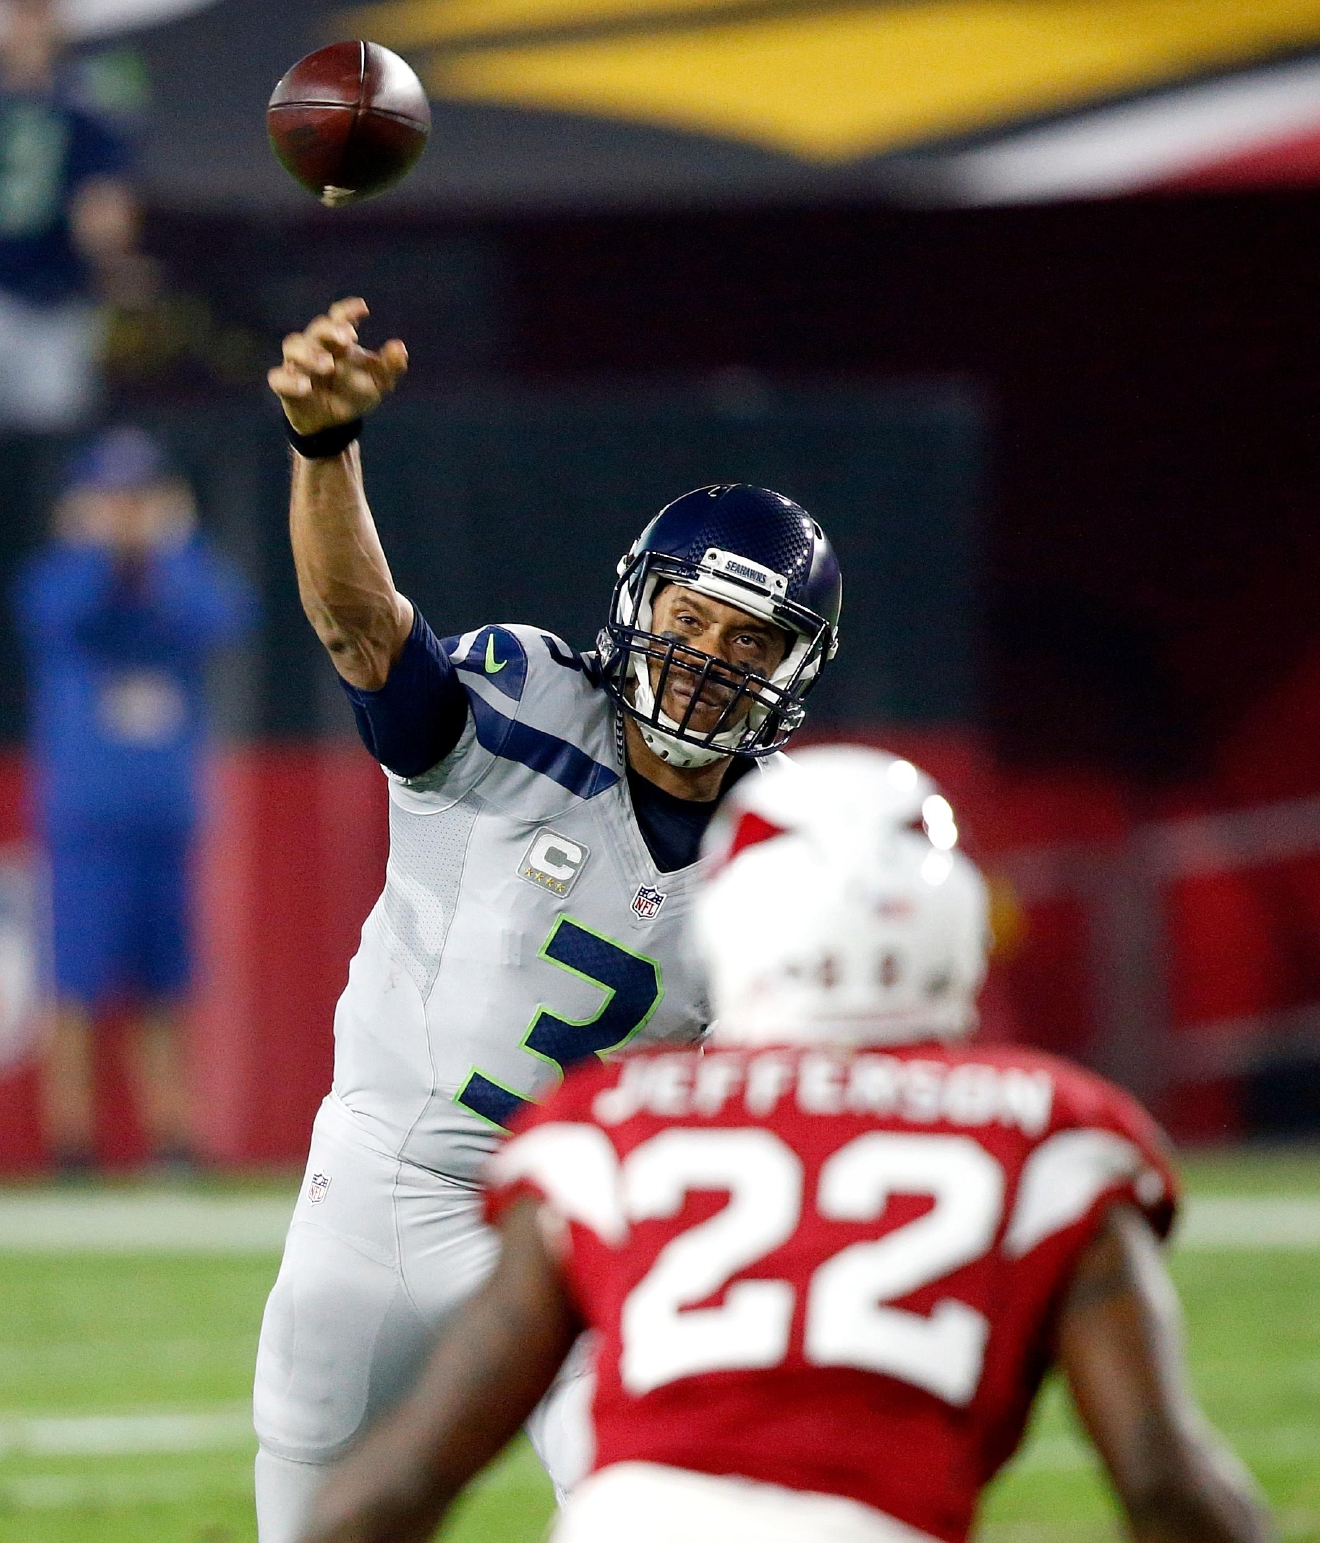 Seahawks vs Cardinals 4 things to watch